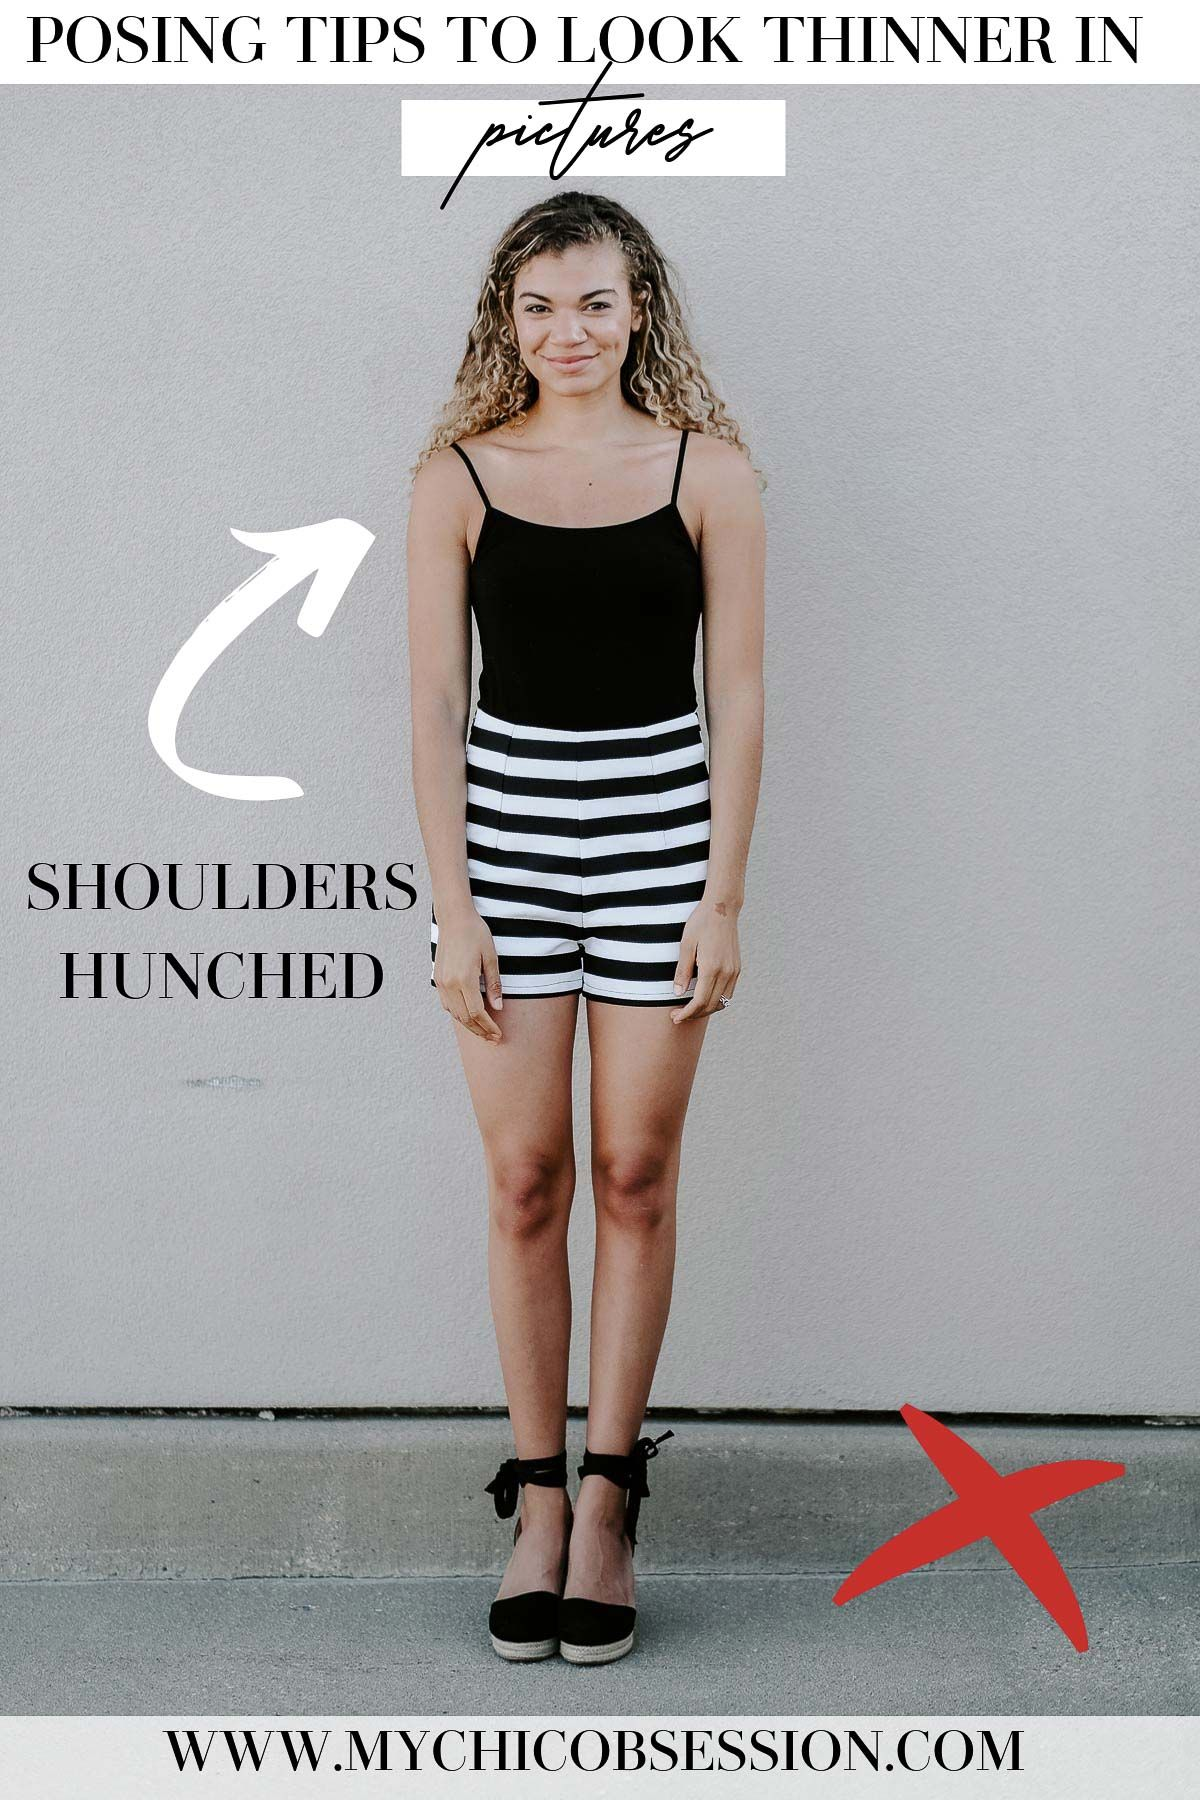 12 posing tips to make you look thinner in pictures with